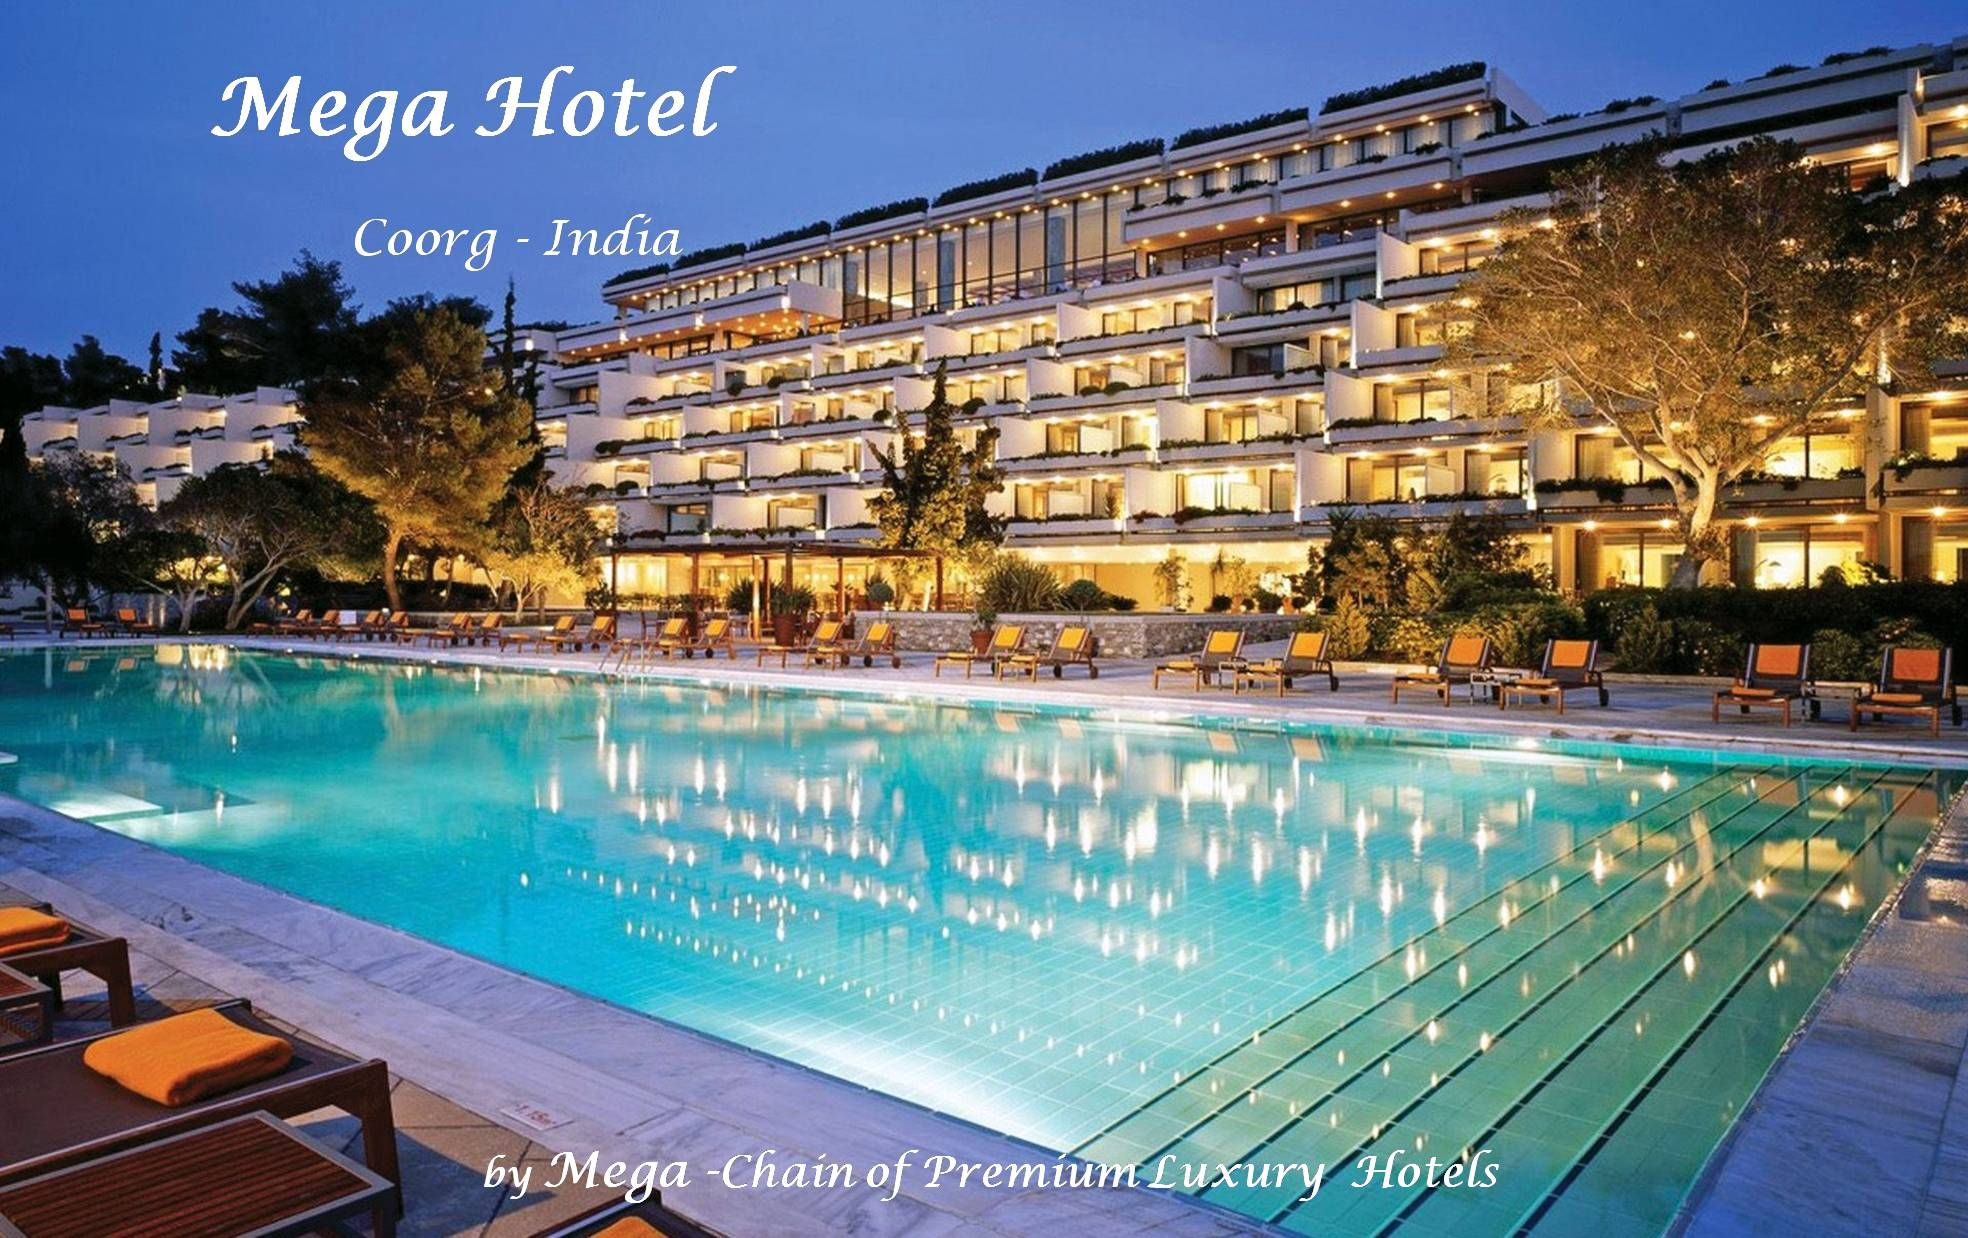 Mega Chain Of Luxury Hotels Is Now In India With Their Very First Hotel At Coorg Mysore Karnataka It Has Been Boutiqued Keeping All Age Groups Mind